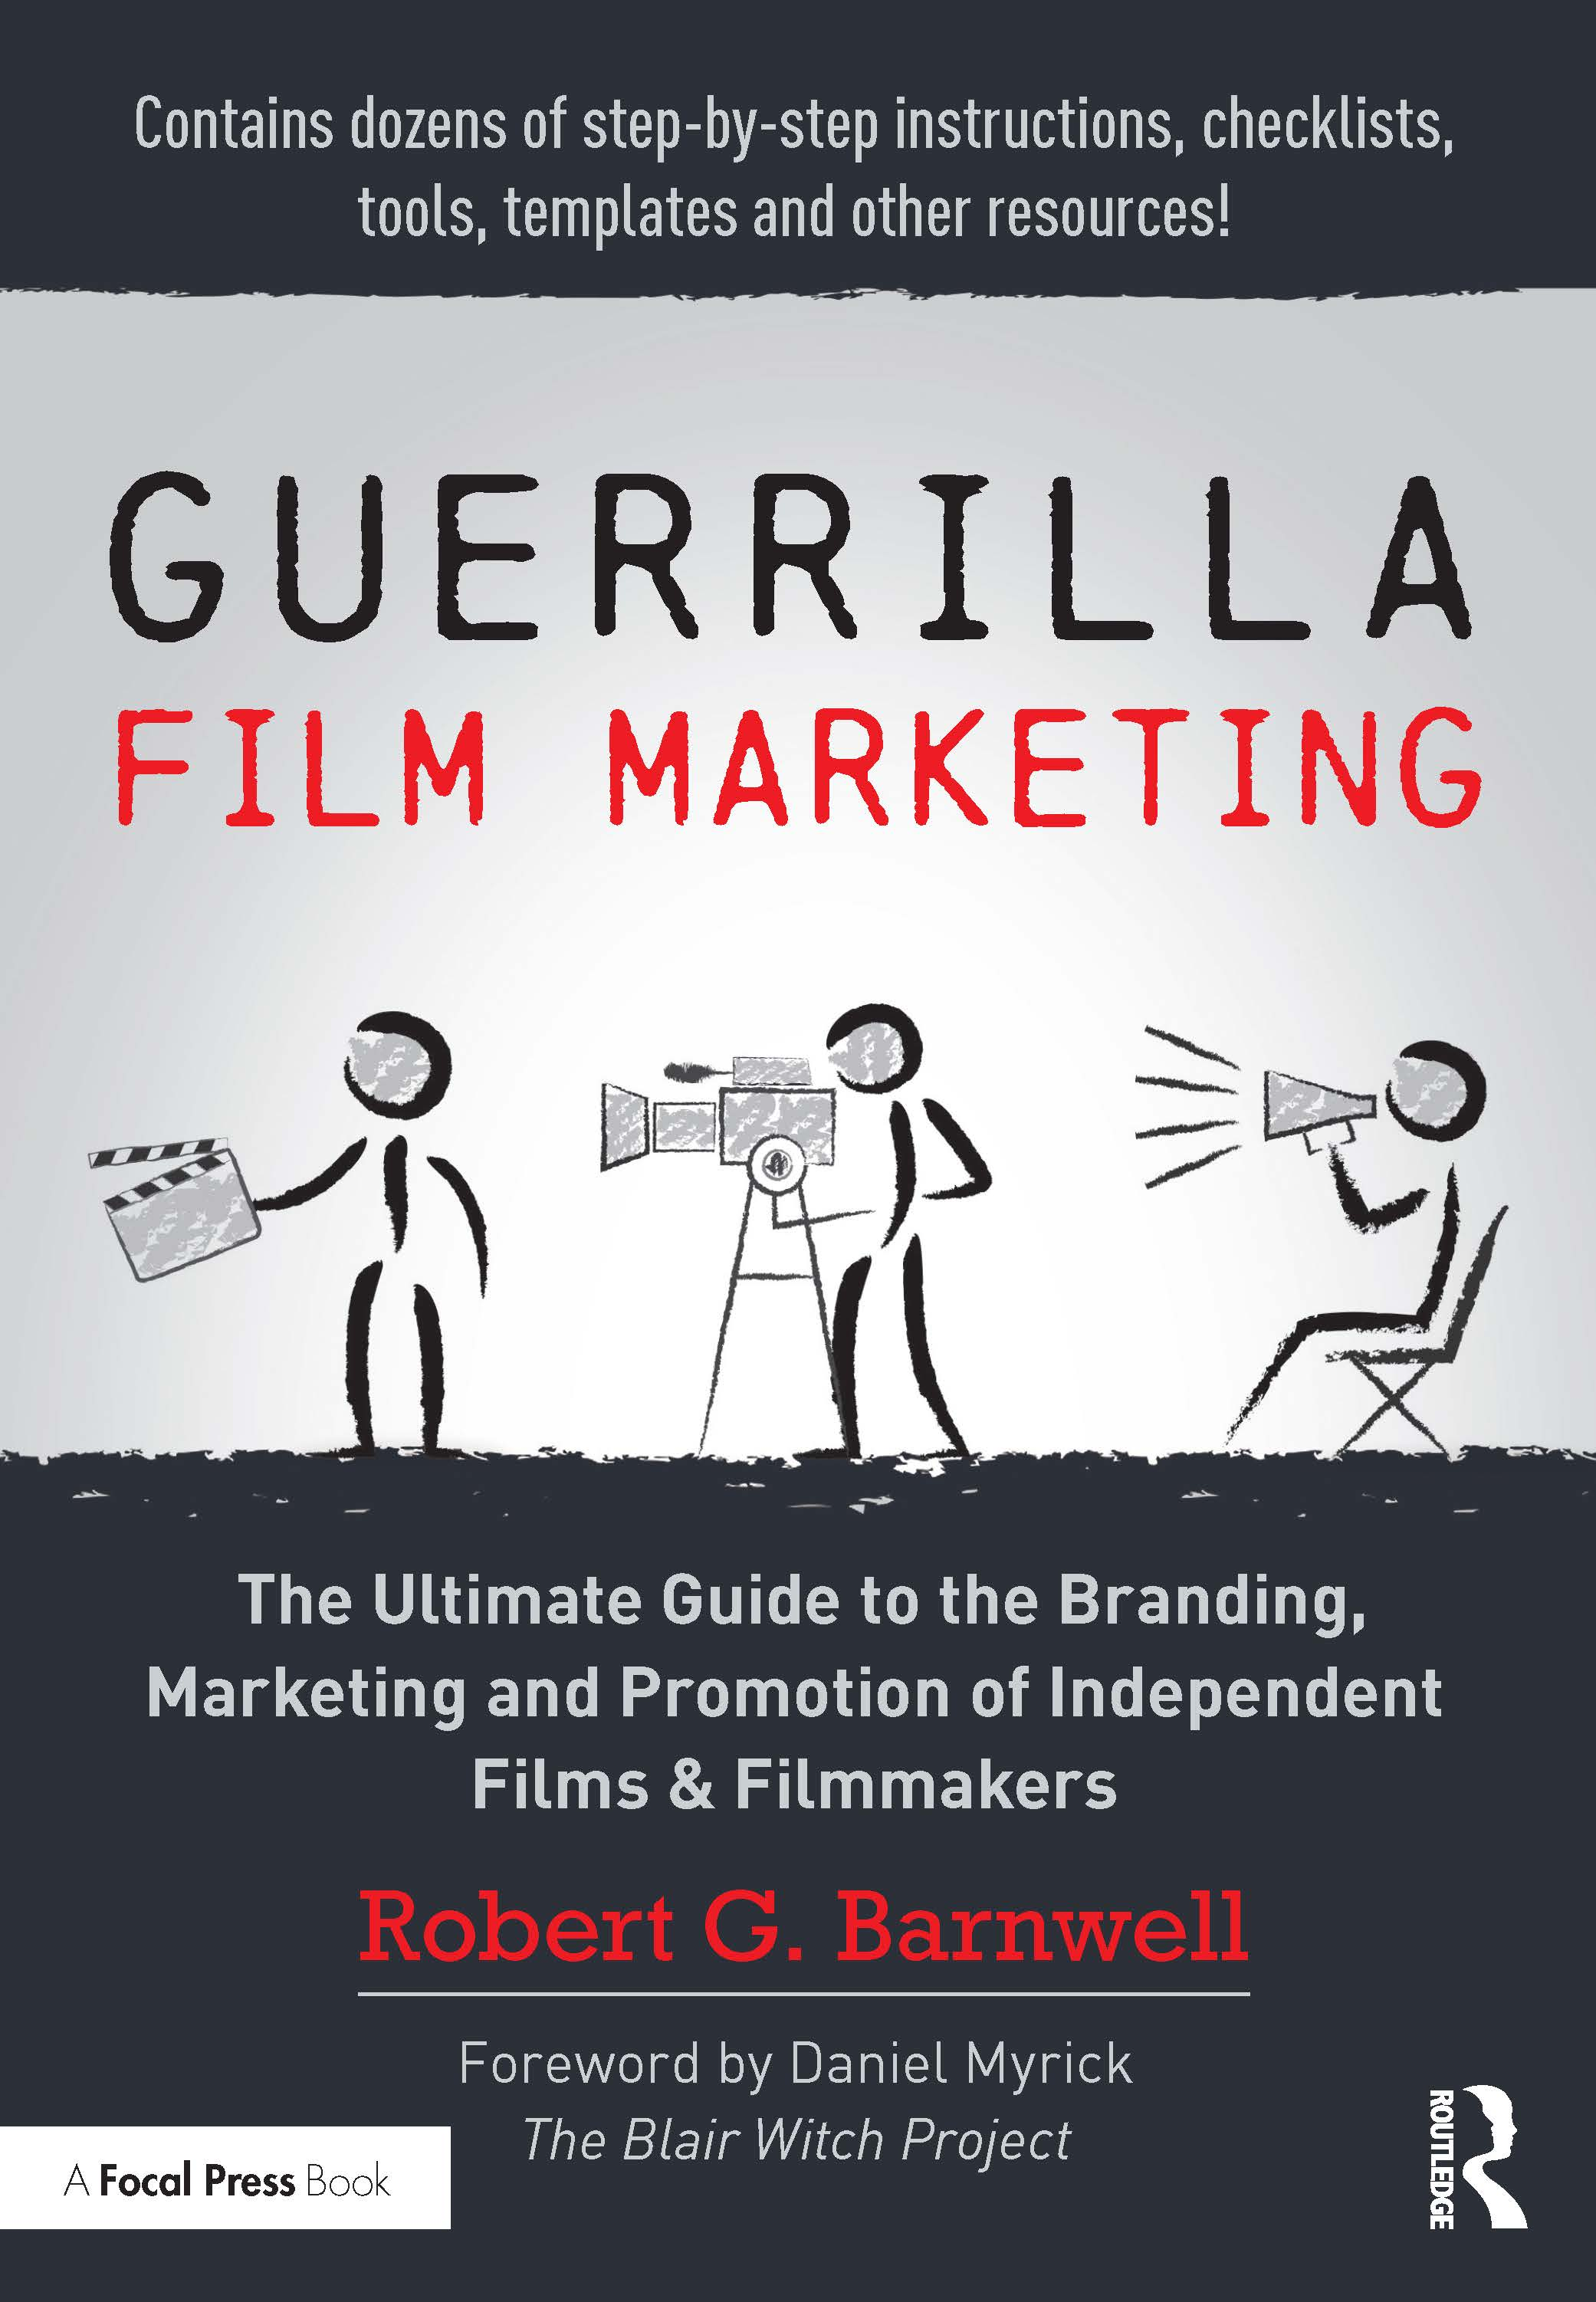 Guerrilla Film Marketing: The Ultimate Guide to the Branding, Marketing and Promotion of Independent Films & Filmmakers book cover